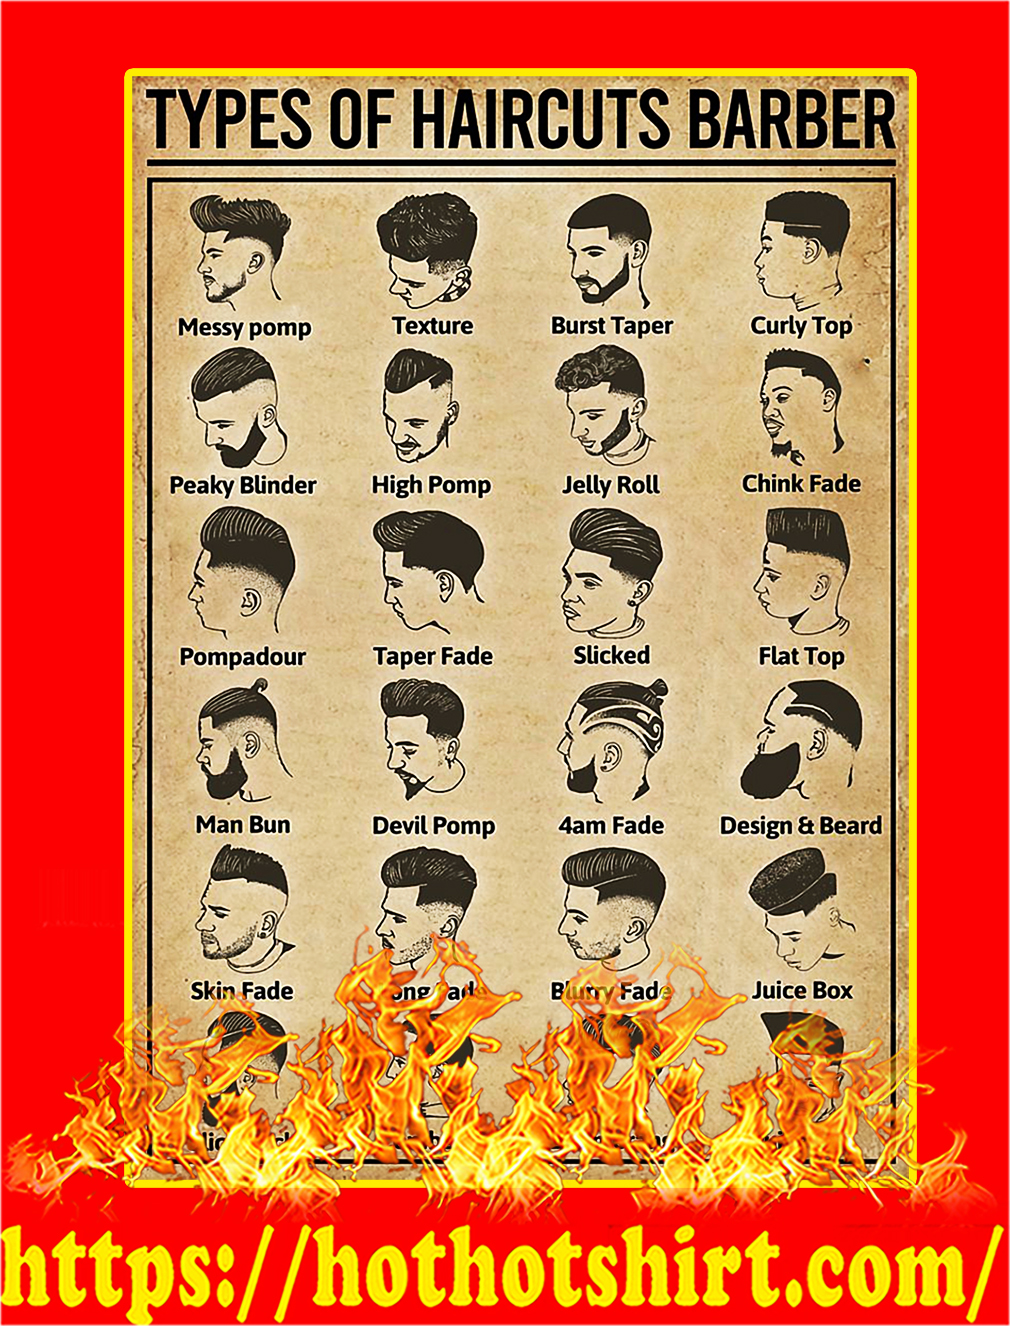 Types Of Haircuts Barber Poster - A3